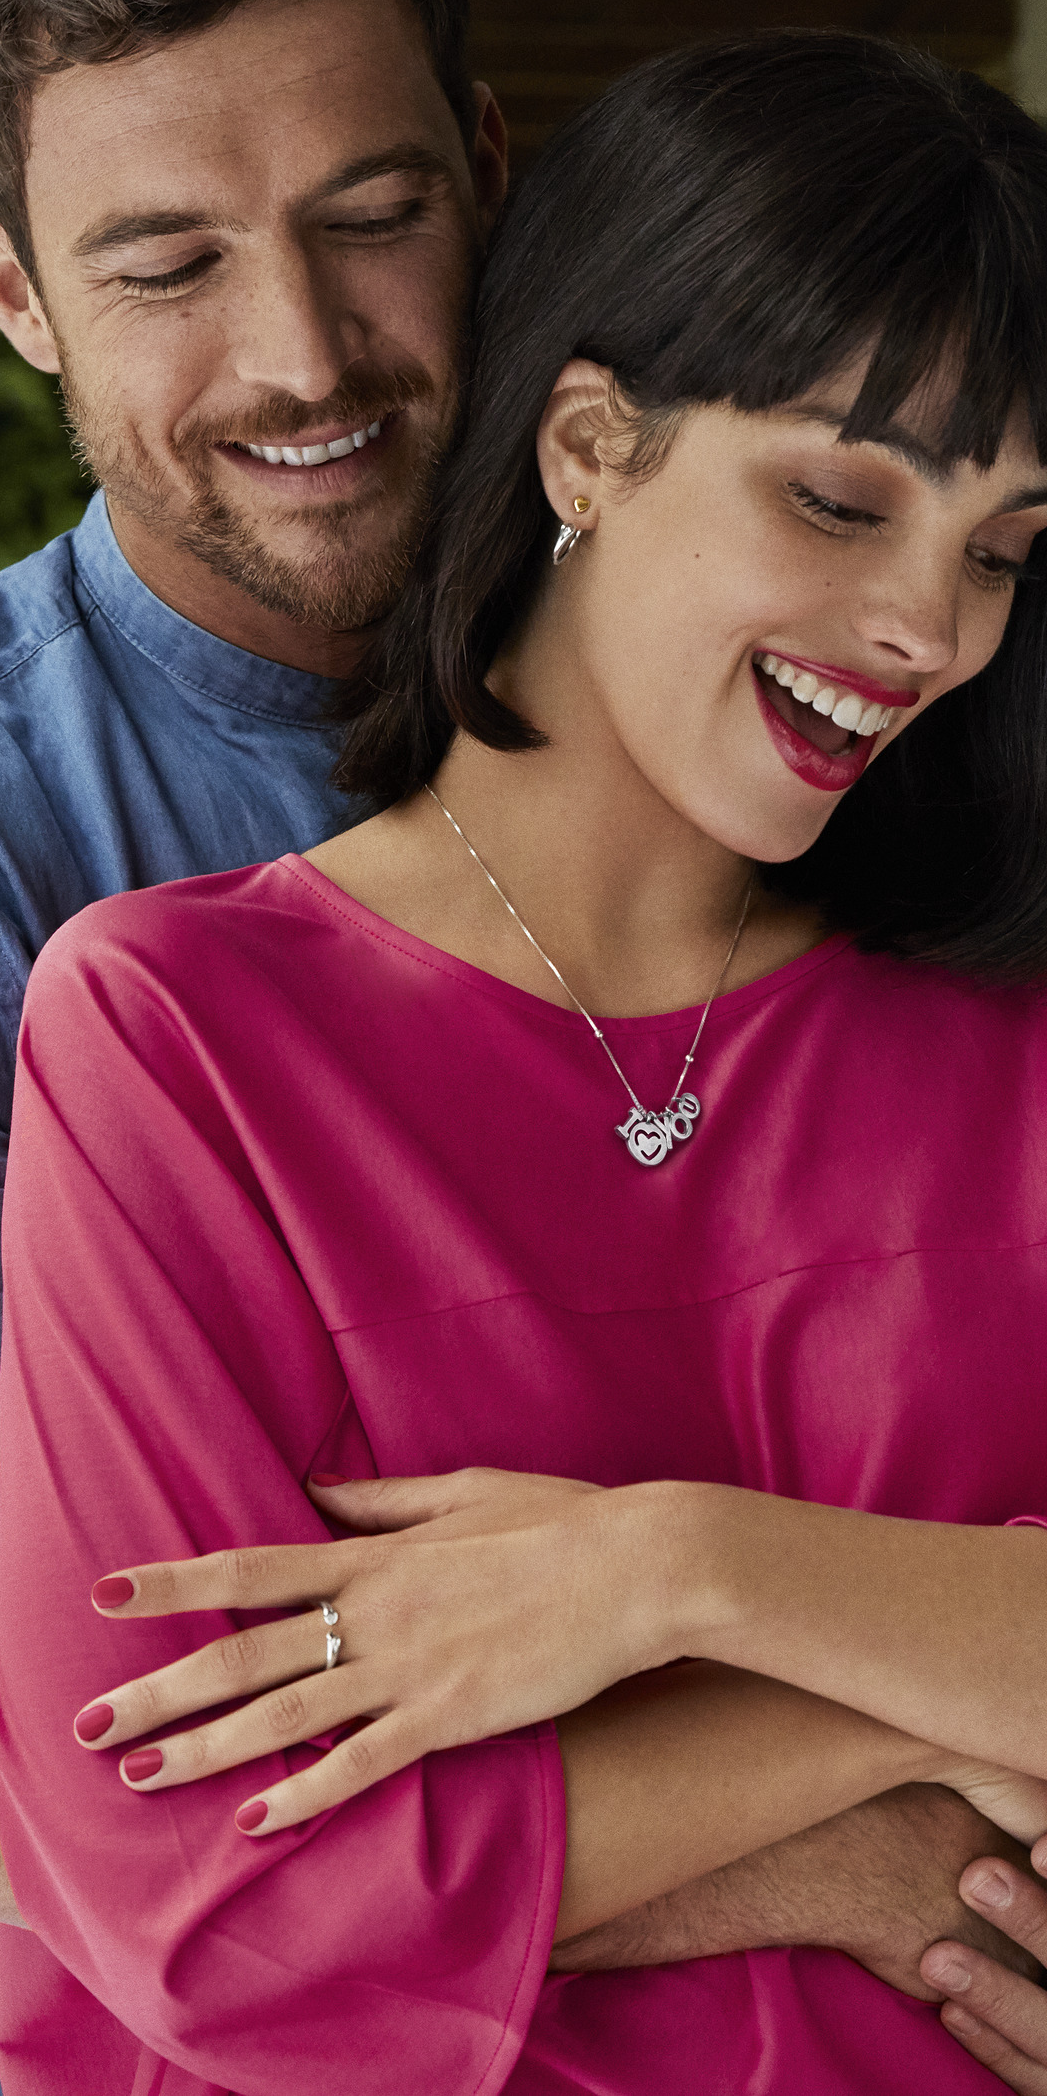 Make a loving statement this Valentine's with the cute 'I Love You' Necklace from PANDORA's Valentine's collection.